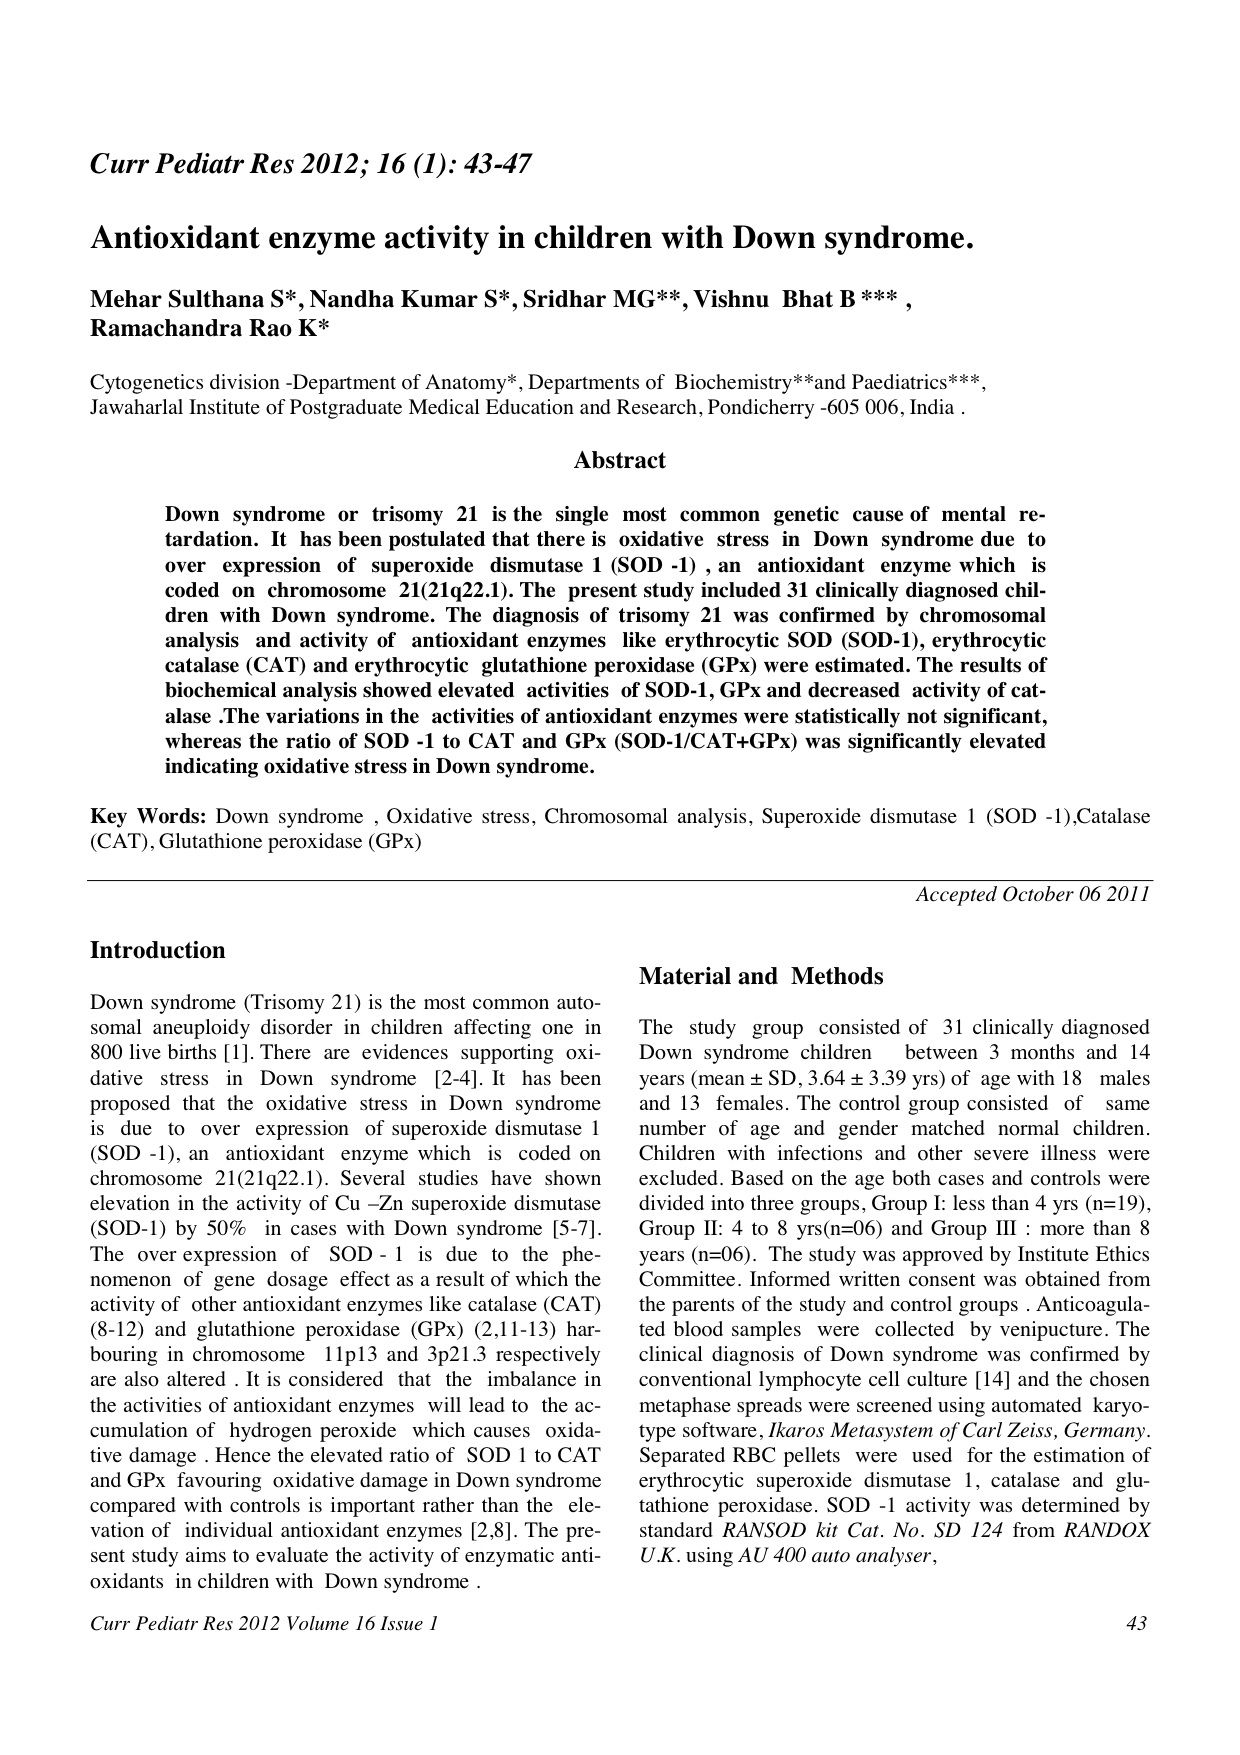 Antioxidant Enzyme Activity In Children With Down Syndrome Down